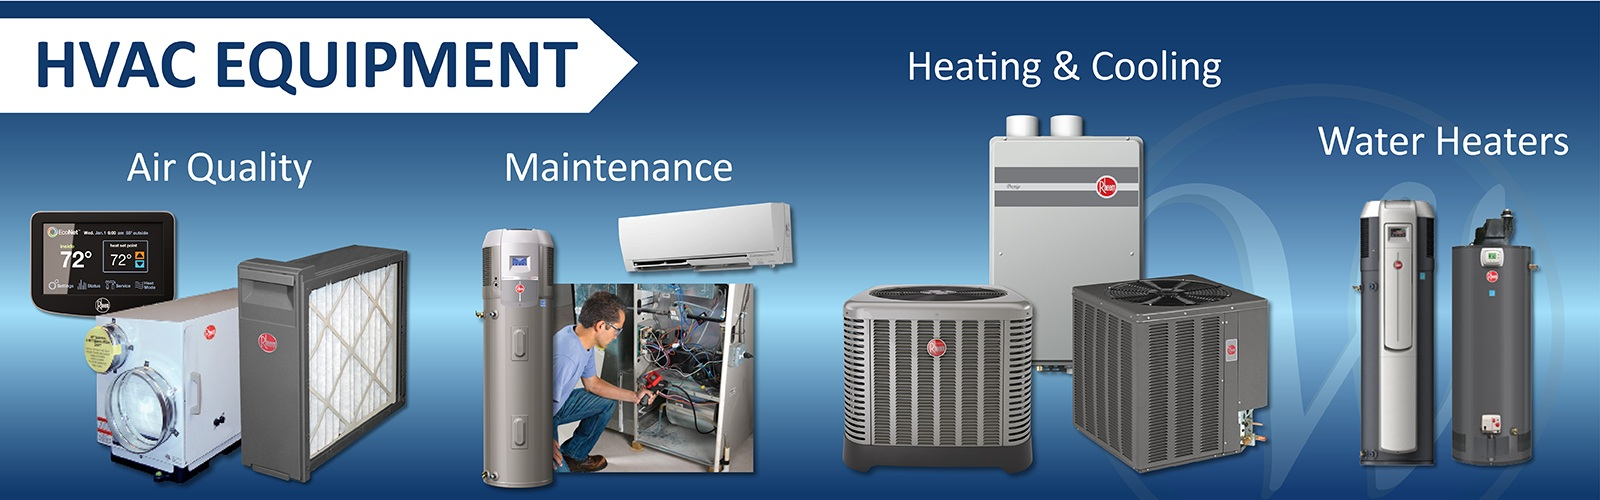 Williamsburg Heating and Air Conditioning - Williamsburg Virginia - Install and maintain HVAC equipment